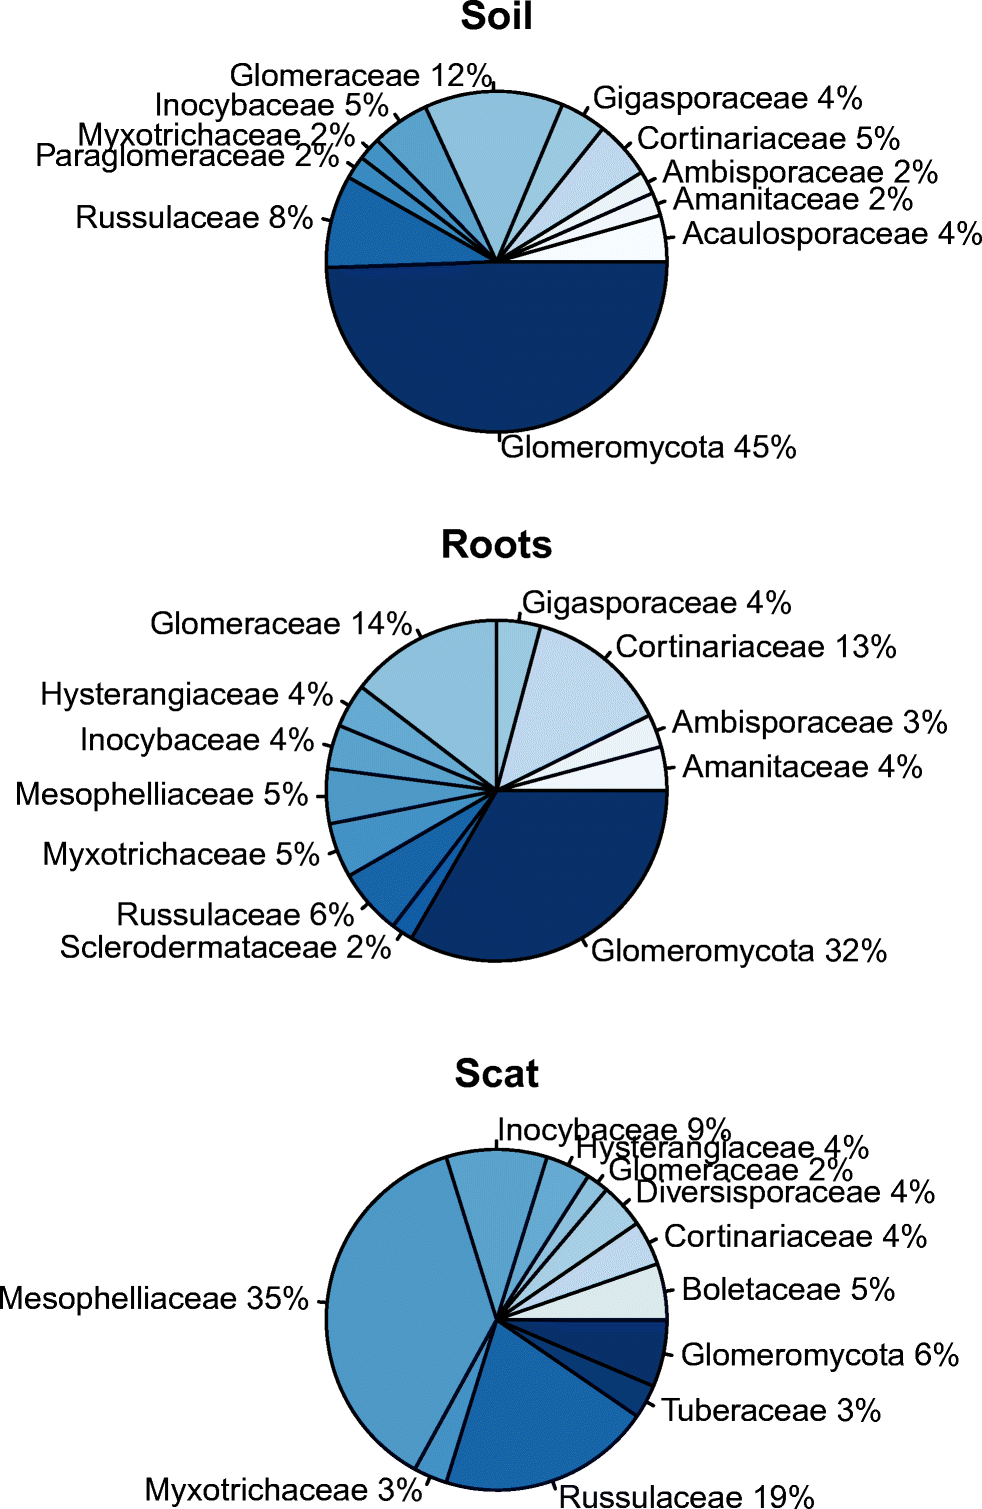 Ectomycorrhizal fungal communities are dominated by